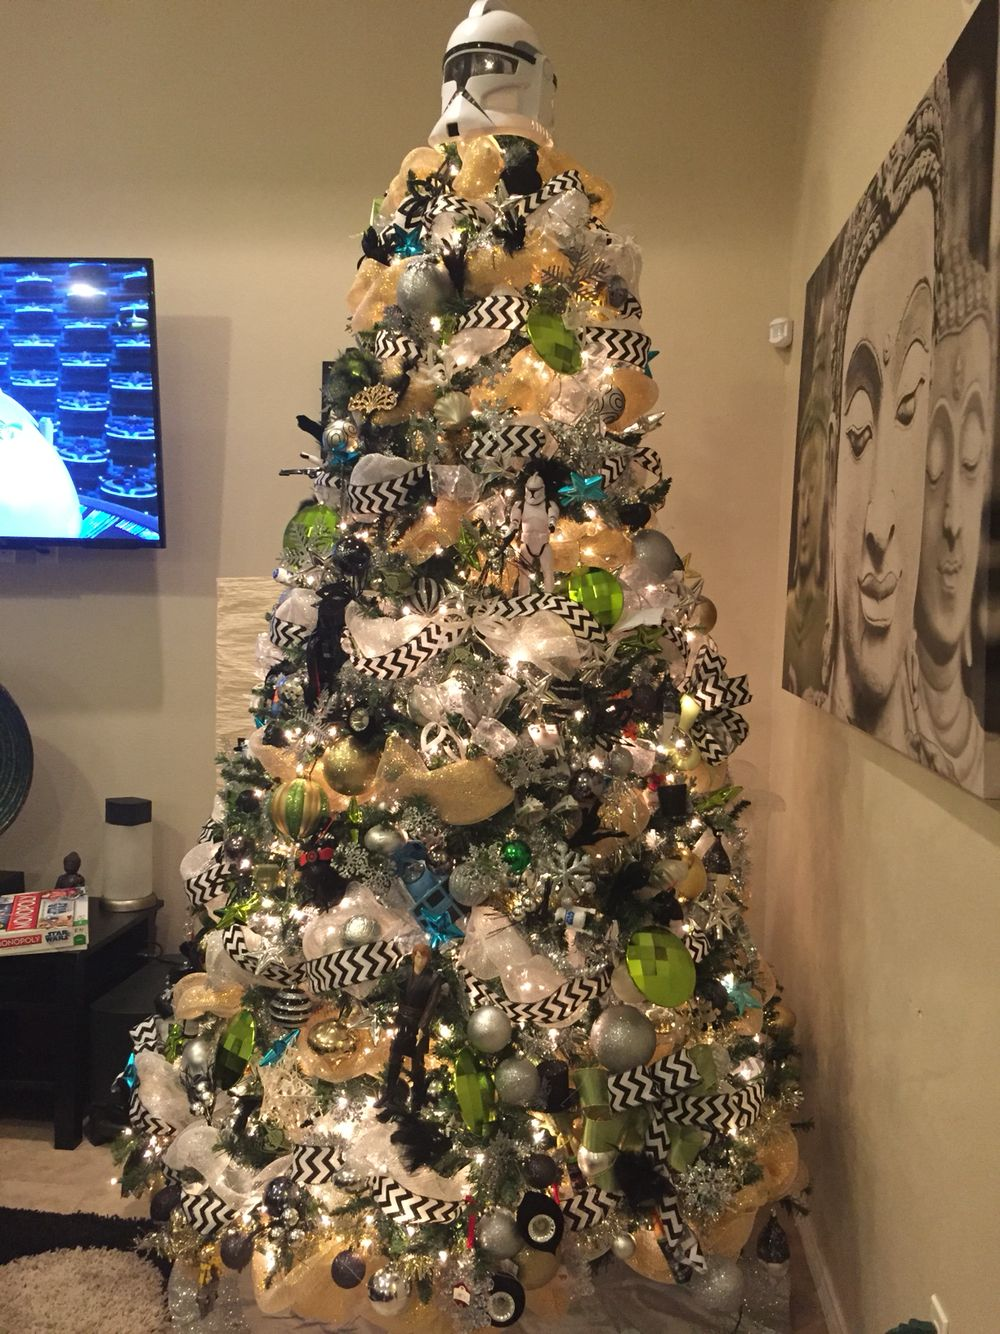 Star Wars Christmas tree 2015 | Star wars christmas tree | Pinterest ...